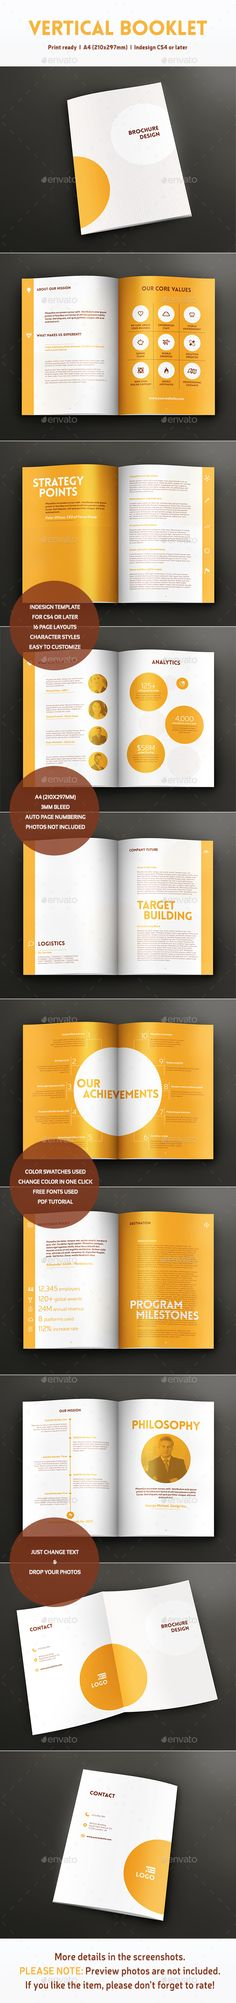 Vertical Booklet - Informational Brochures. Bright, fresh and bold in corporate, yet fun style. Yellow color for energy and dynamics.